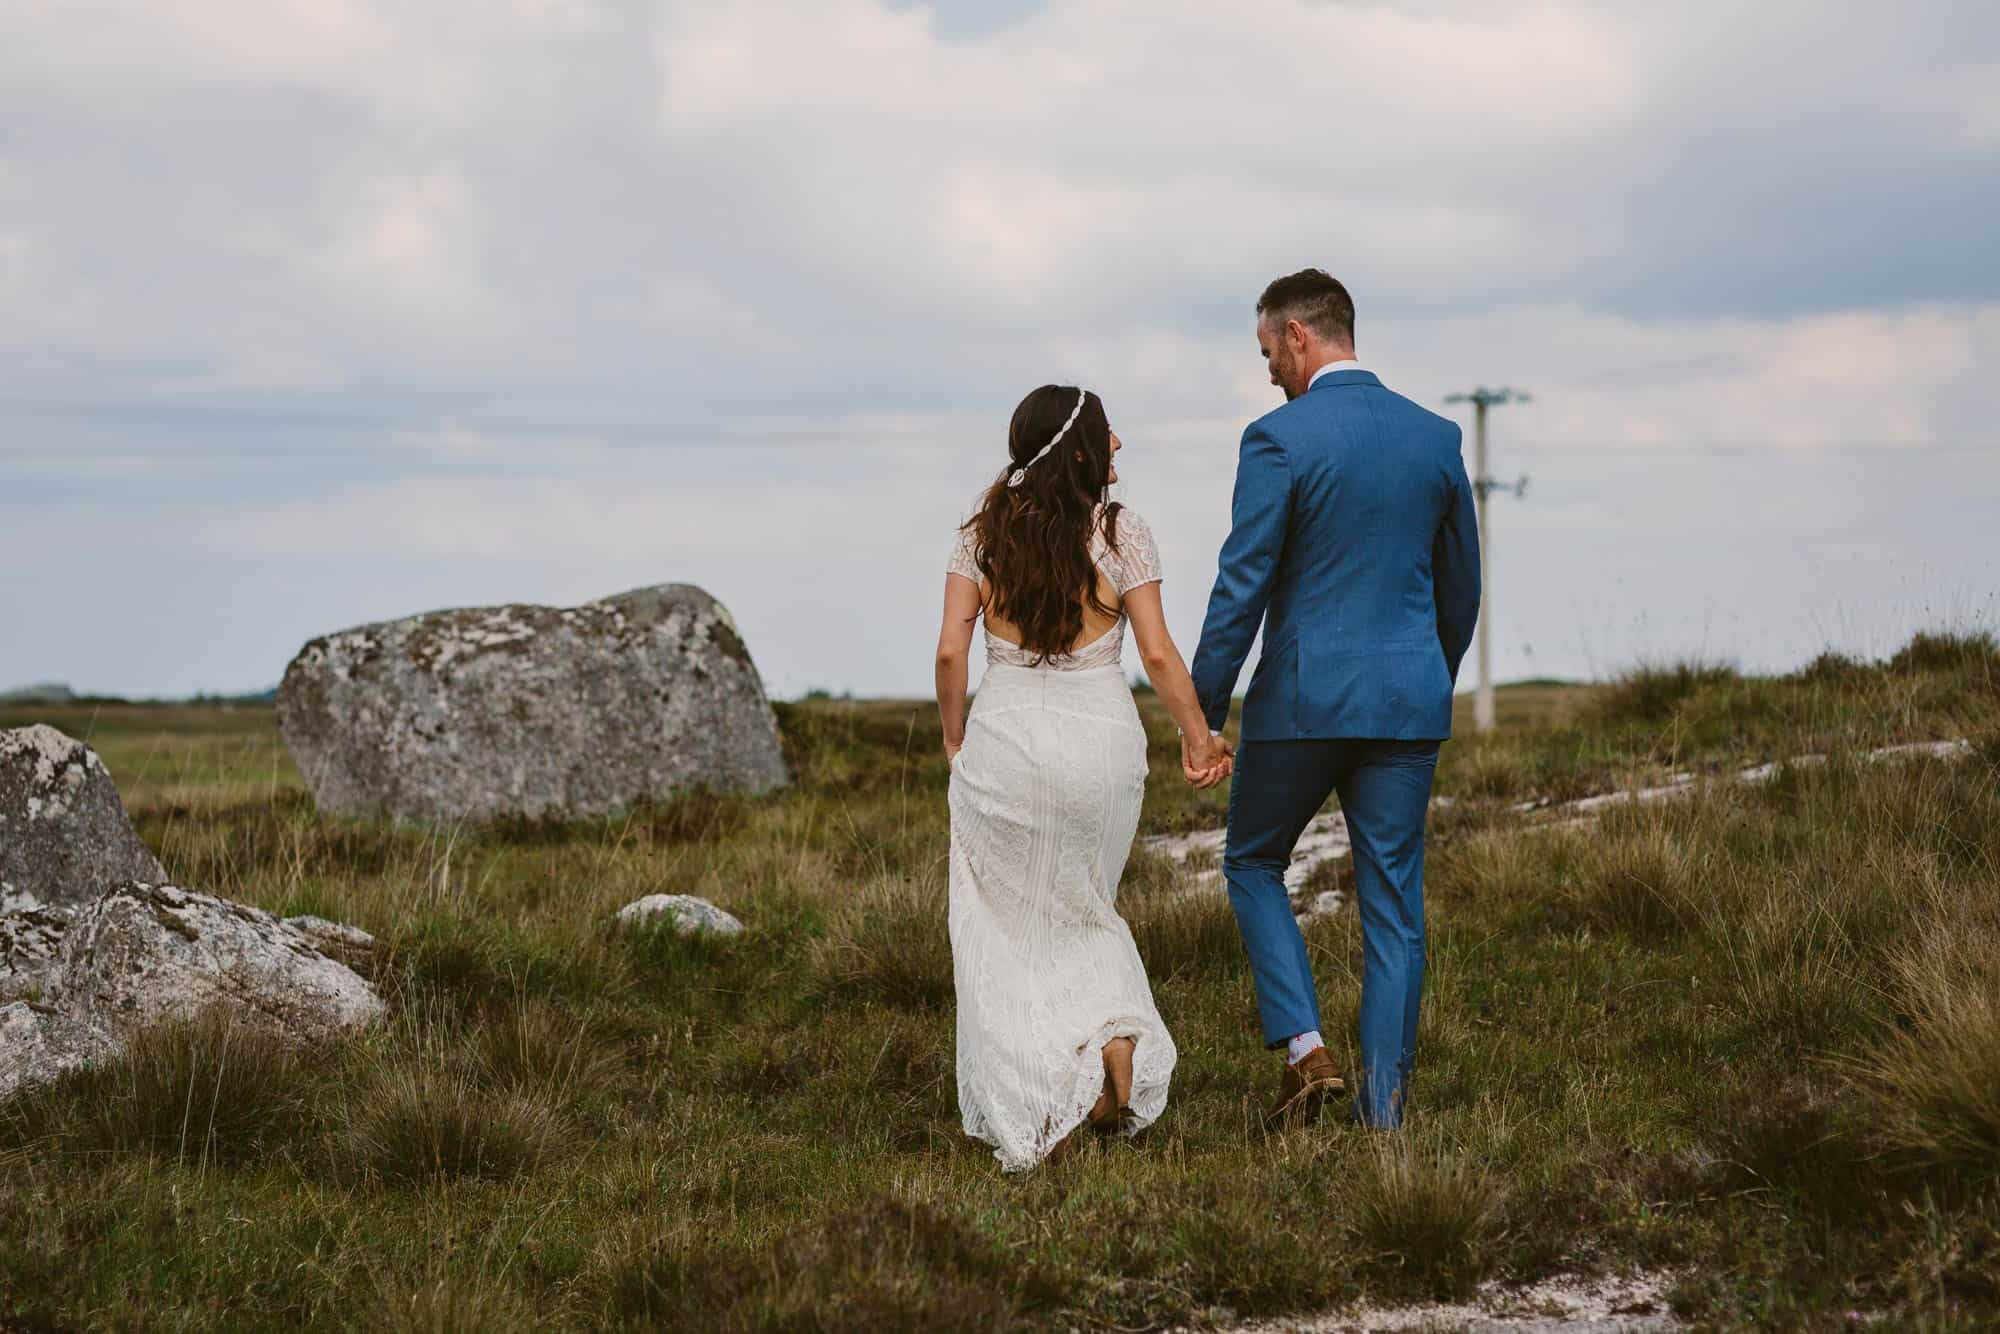 Elopement videographer Ireland, couple walk through a field